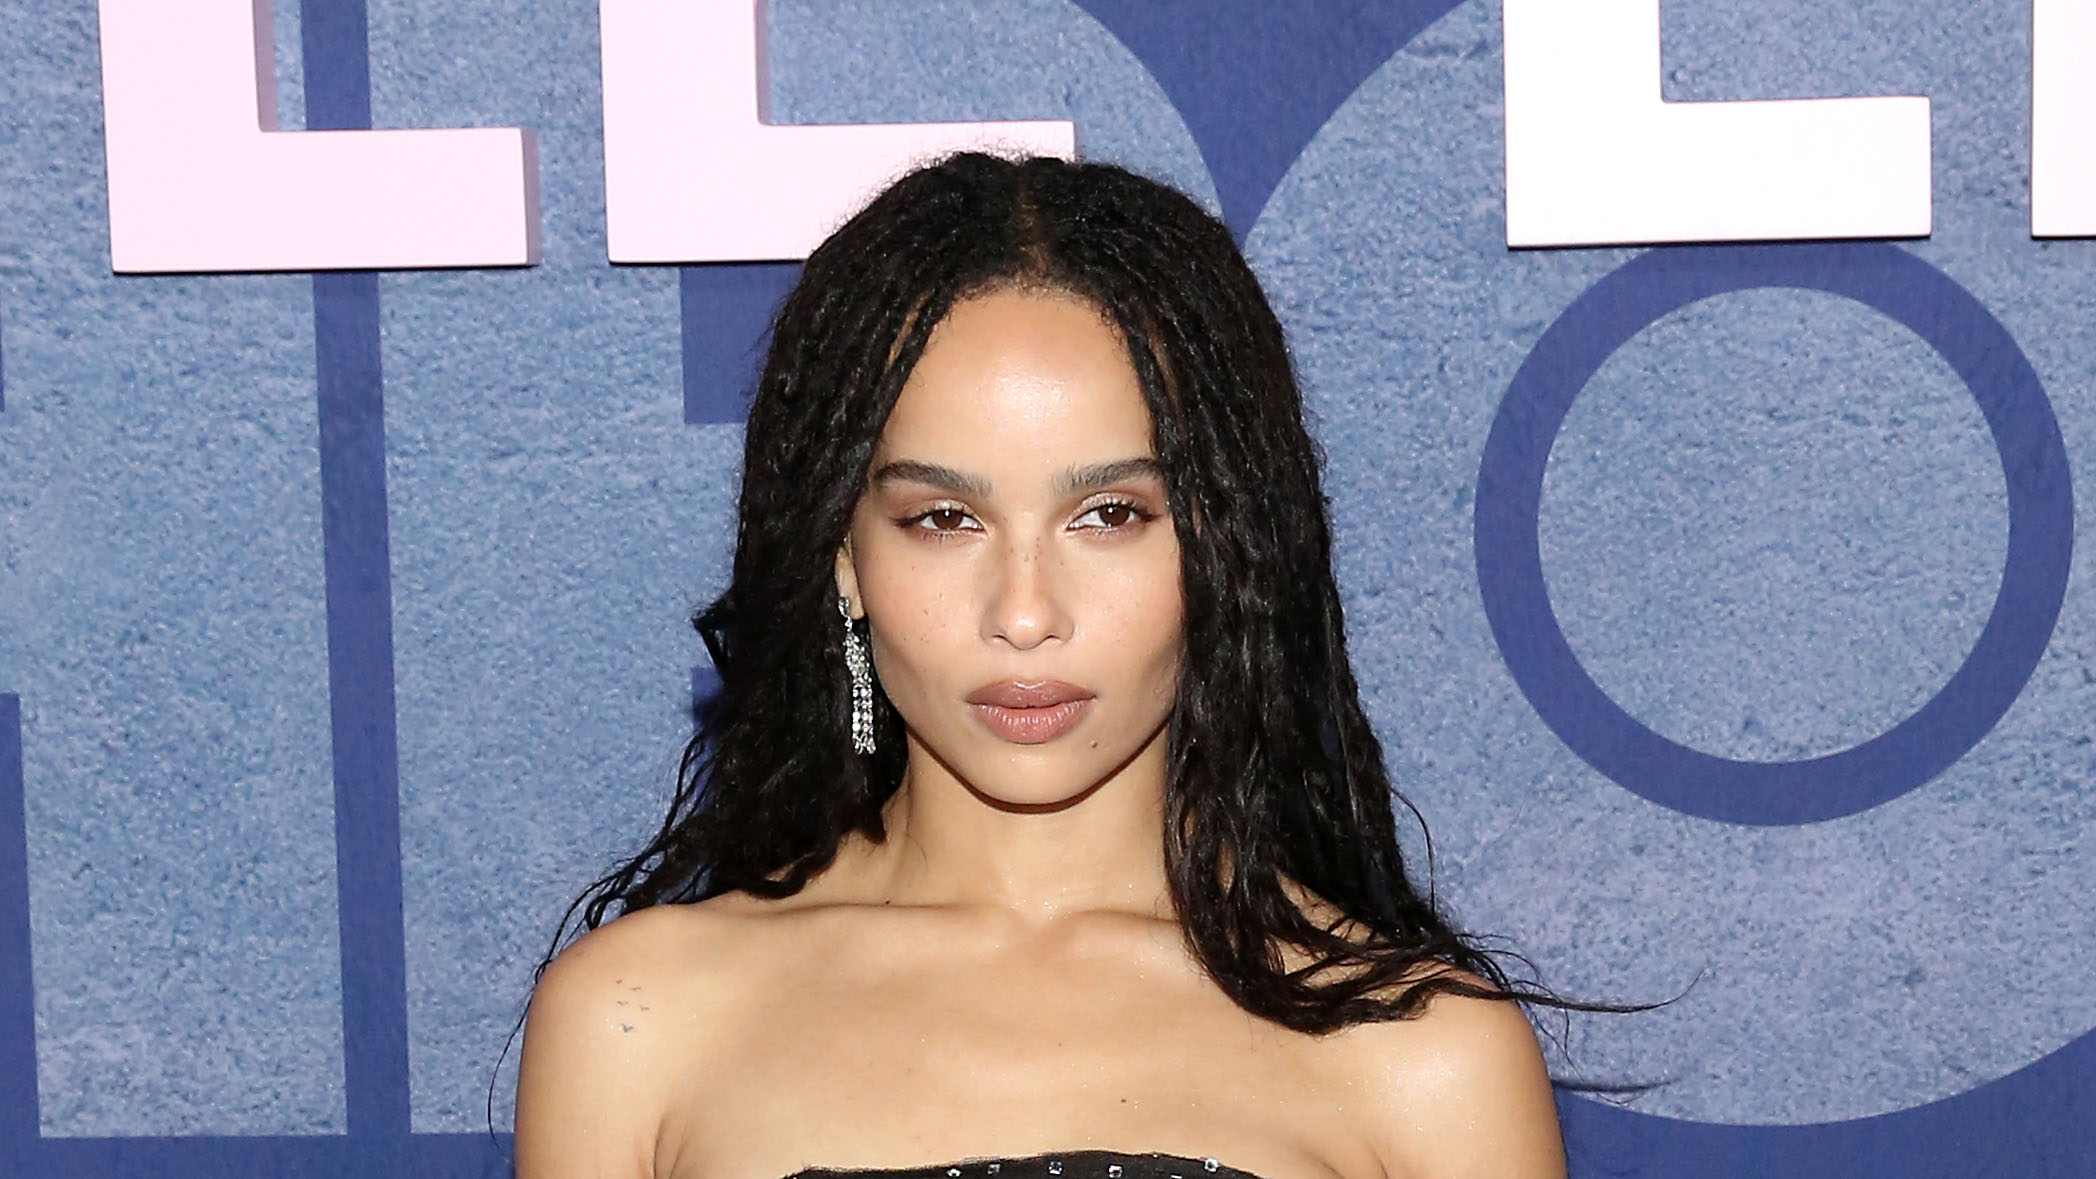 Jason Momoa congratulates Zoë Kravitz for landing role in 'The Batman' as Catwoman